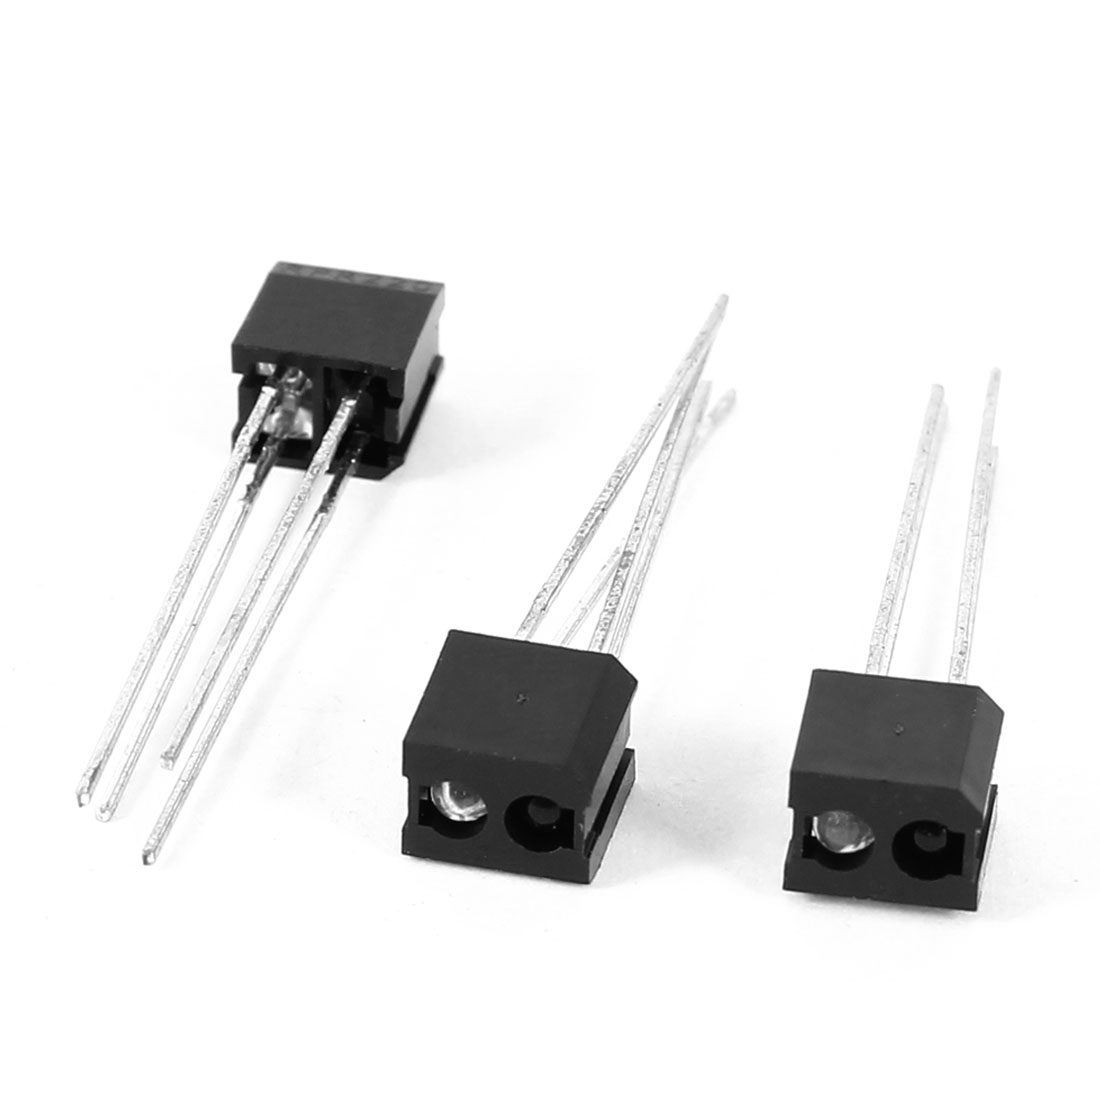 RPR220 30V 30mA 4 Radial Lead Type Through Hole Mounting Transistor Output Reflective Optical Photoelectric Sensor 3Pcs